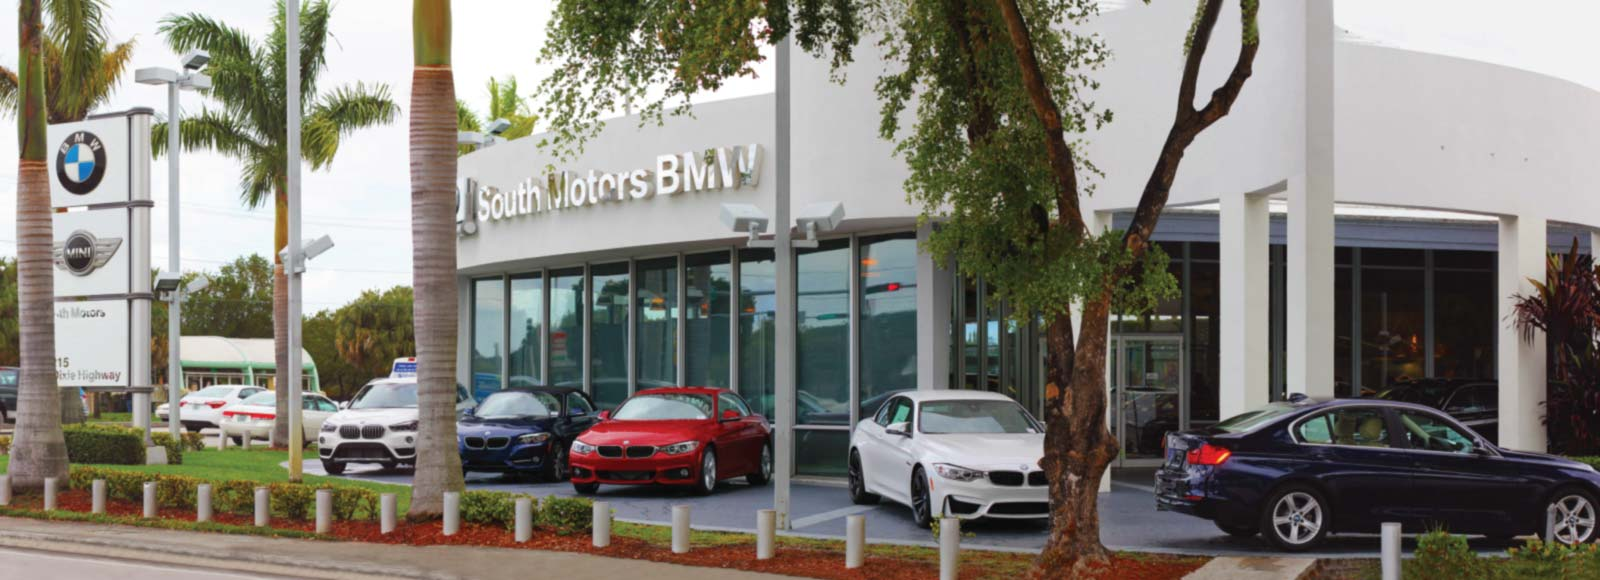 South Motors in Miami